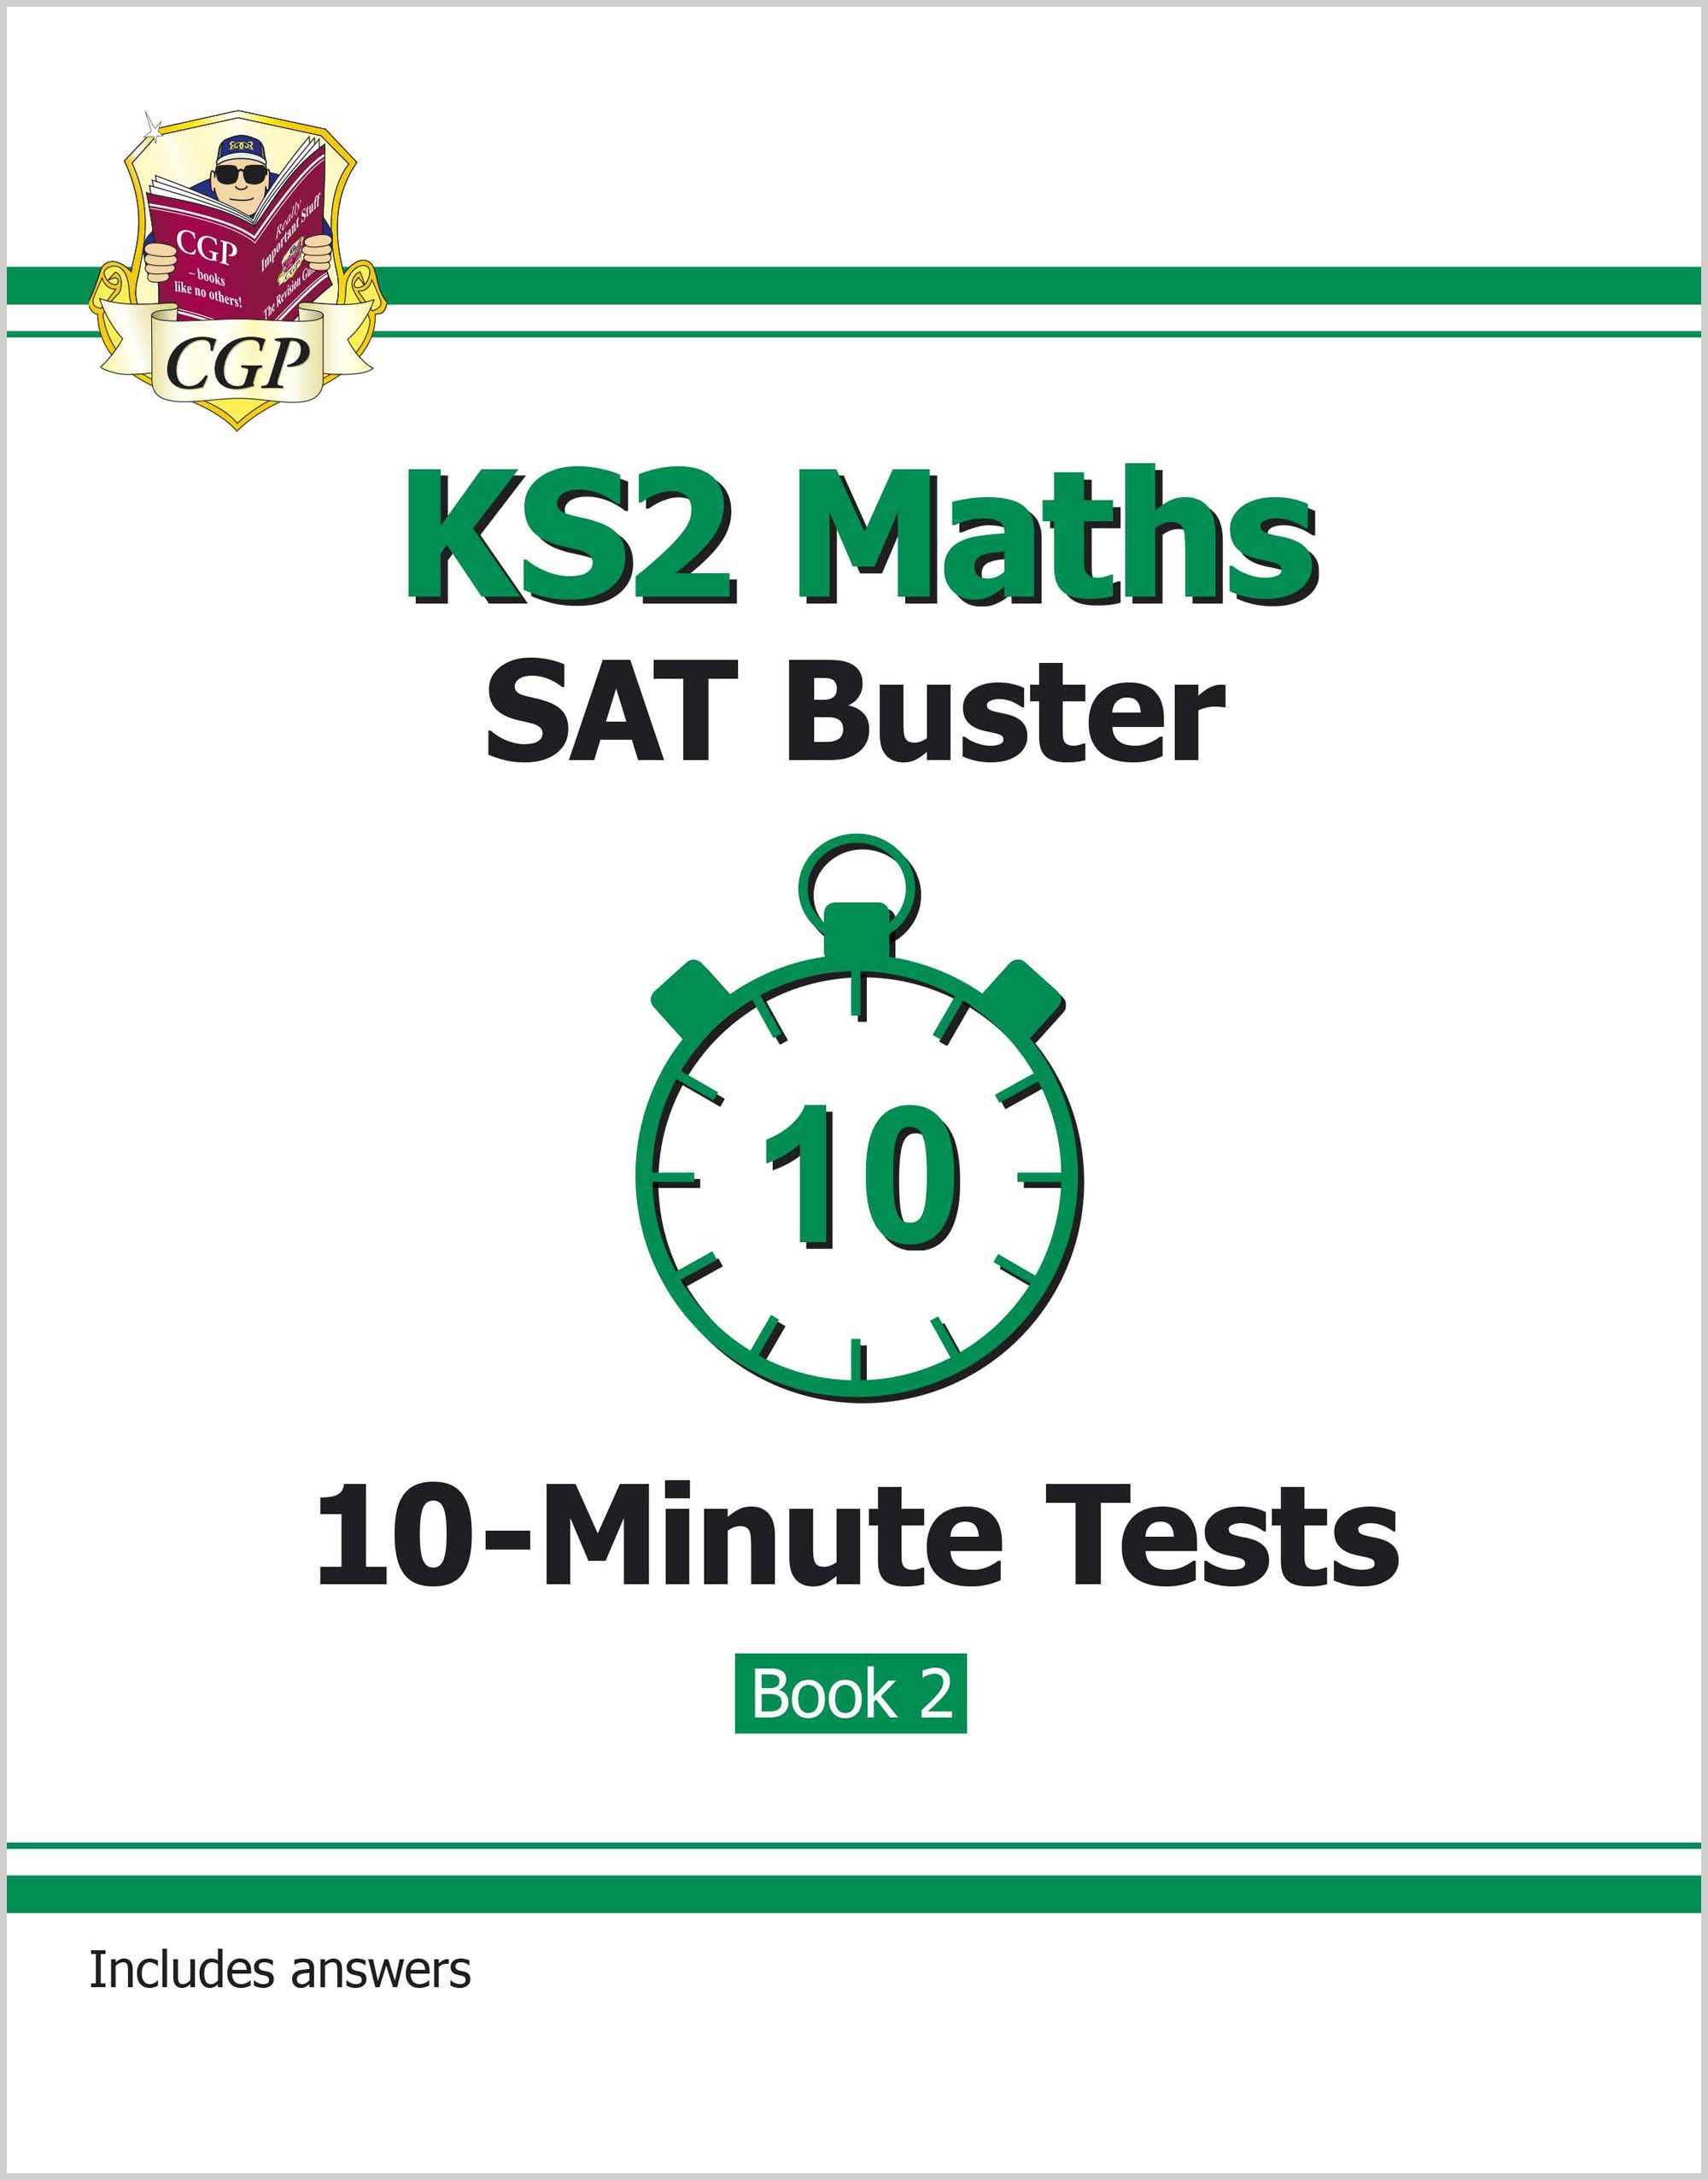 MXP221DK - KS2 Maths SAT Buster 10-Minute Tests: Maths - Book 2 (for the 2020 tests)